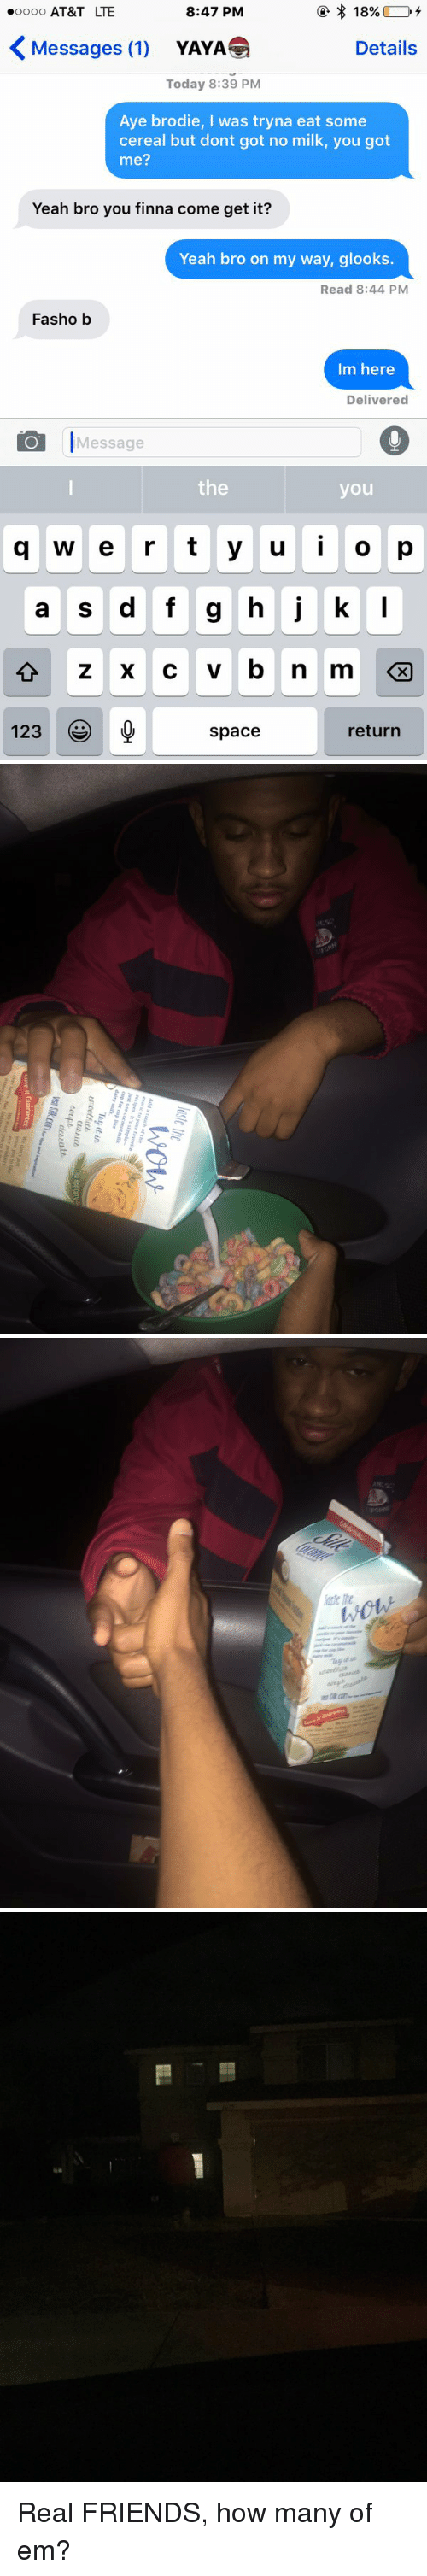 Friends, Real Friends, and Xxx: 18% D  8:47 PM  ooooo AT&T LTE  Messages (1)  Details  YAYA  Today 8:39 PM  Aye brodie, I was tryna eat some  cereal but dont got no milk, you got  me?  Yeah bro you finna come get it?  Yeah bro on my way, glooks  Read 8:44 PM  Fasho b  Im here  Delivered  Message  the  you  g w e r t y u i o p  a s d f g h j k  l  123  return  space   isow  Add a  touch of the  exotic to your favorite  recipes It's simple-  just use  cup for cup like  dairy milk.  ymuke  Try it  urcotfitb  Tha Red  Cut ith  ect deet,O  deedle  It Guarantee  WedNTEjust  want you to Rae  herts. Not   Nc  inte The  Woll  远ORGT. Real FRIENDS, how many of em?